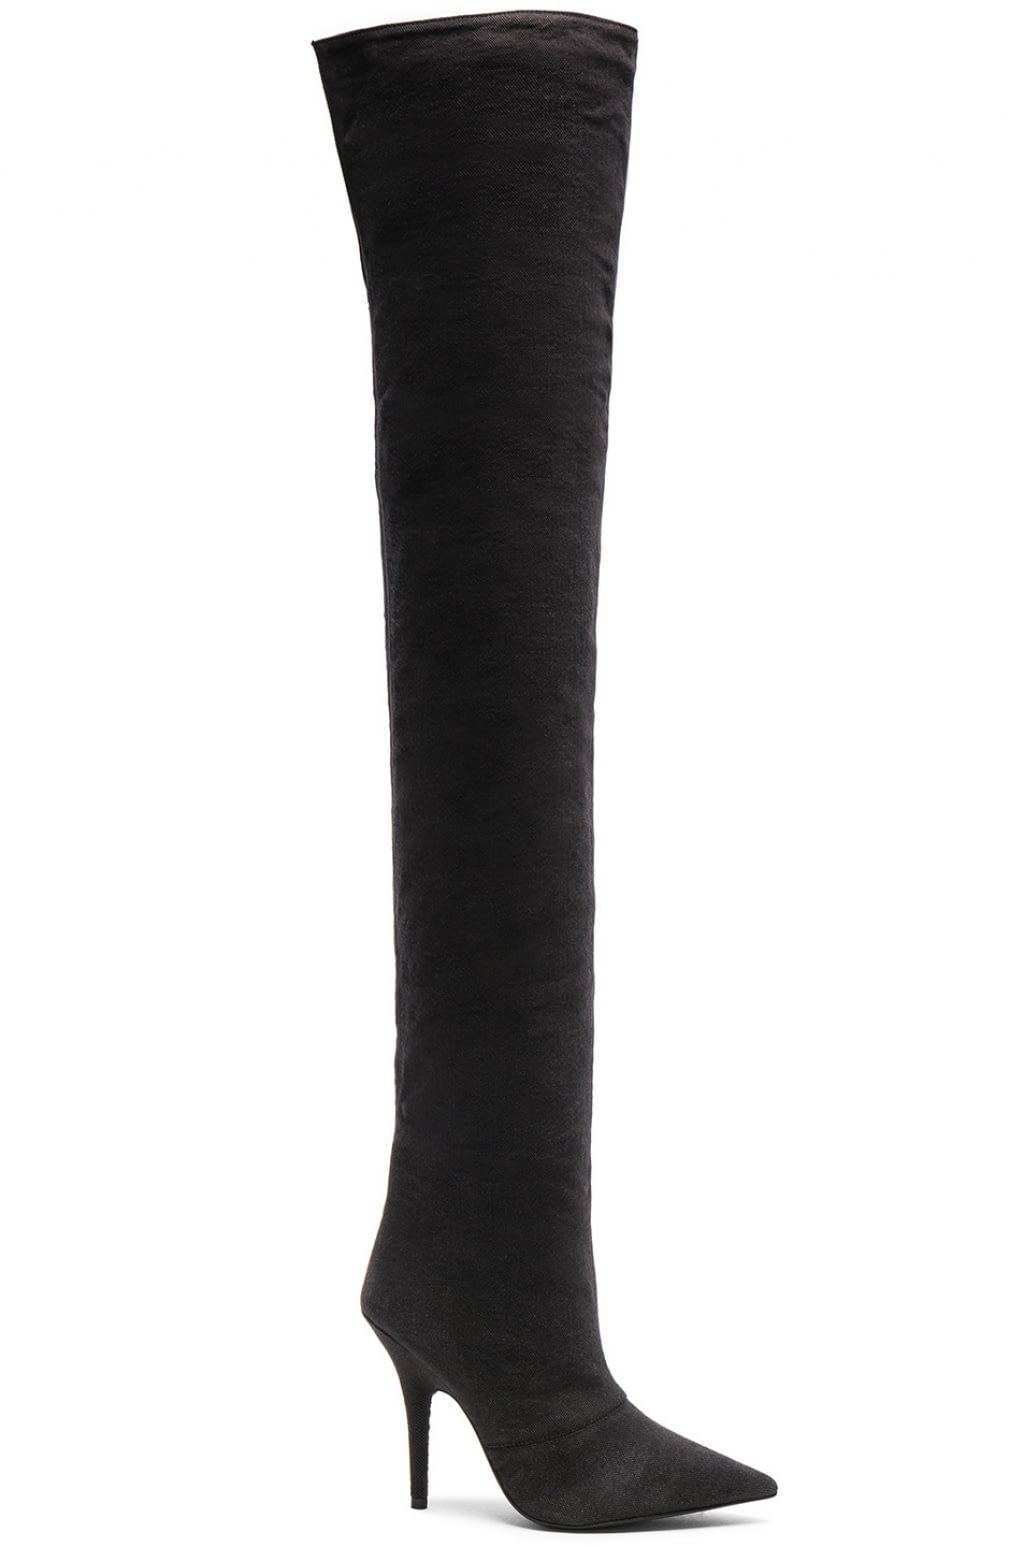 Yeezy Season 6 Washed Canvas Thigh High Boots in . ZQl4weF5